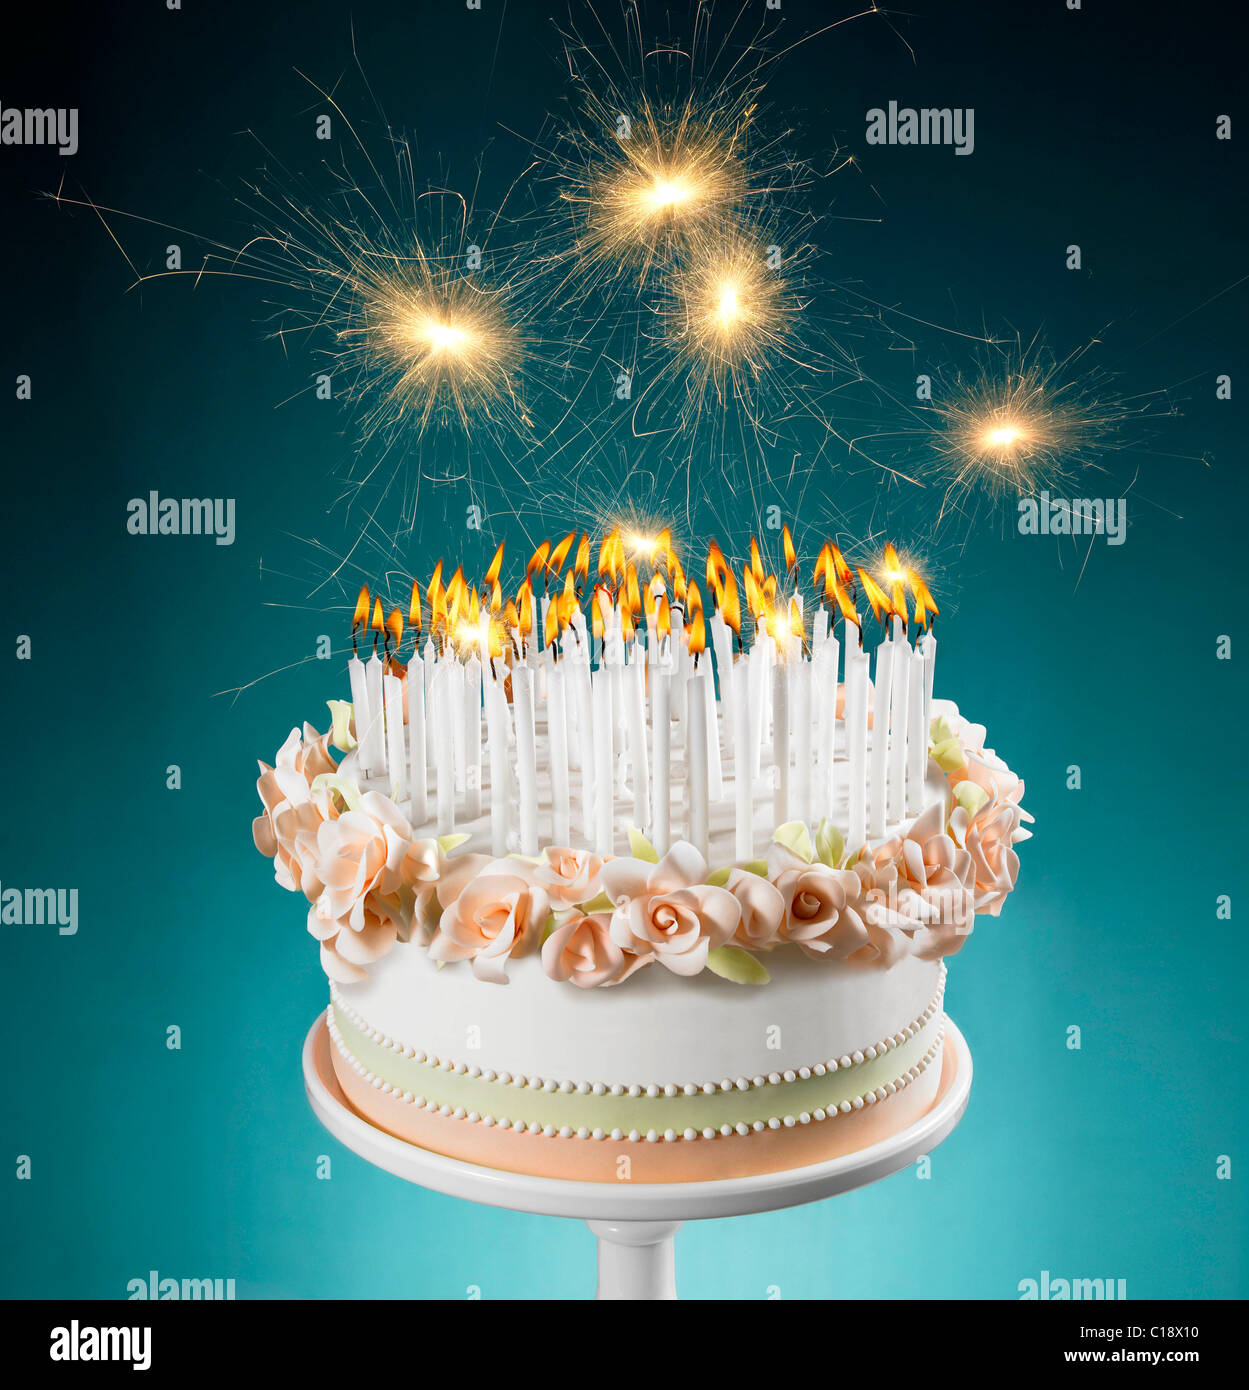 Birthday Cake With Lots Of Burning Candles Stock Photo